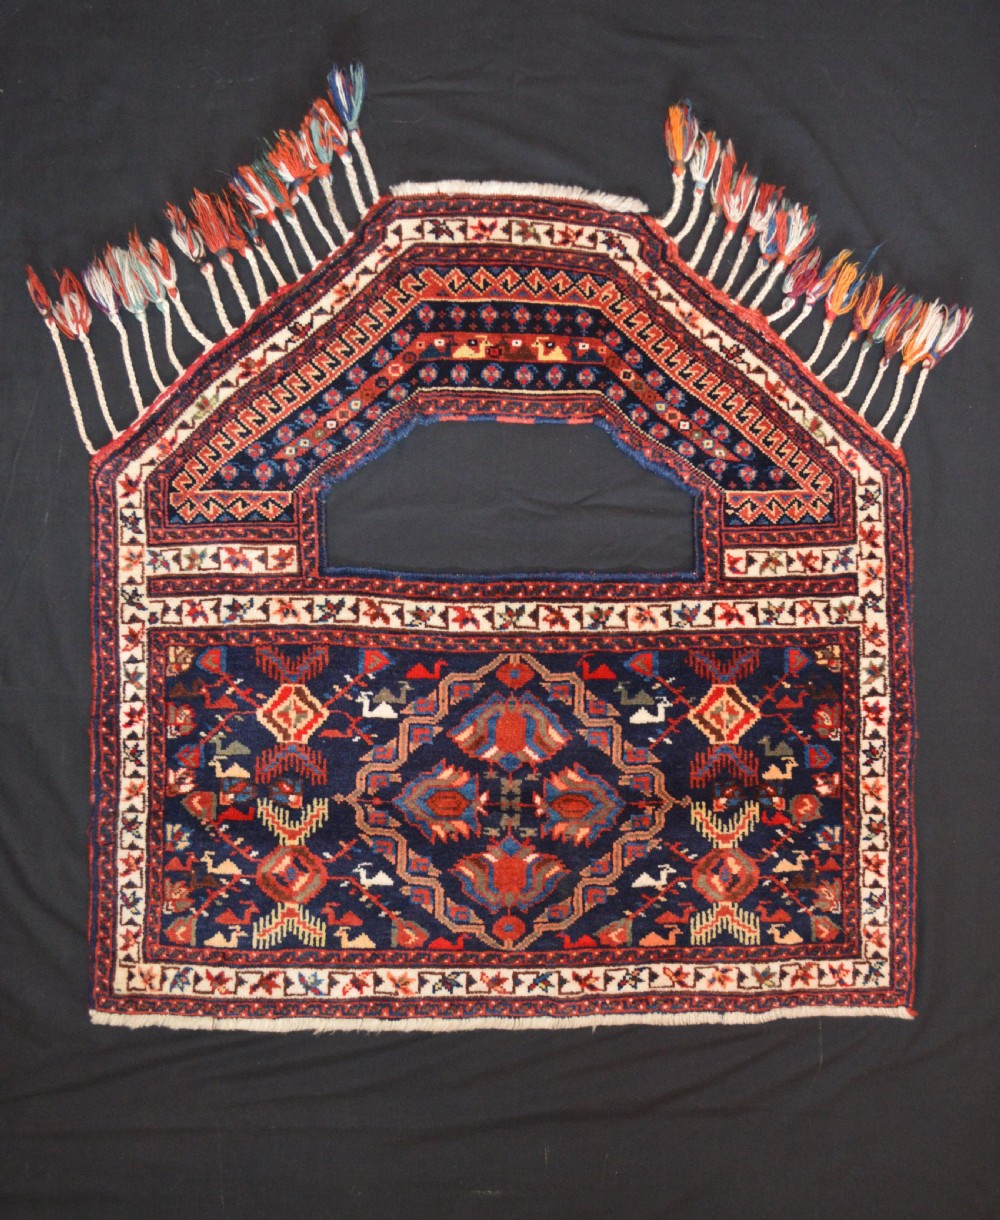 antique ceremonial saddlecover afshar tribes kerman province south persia